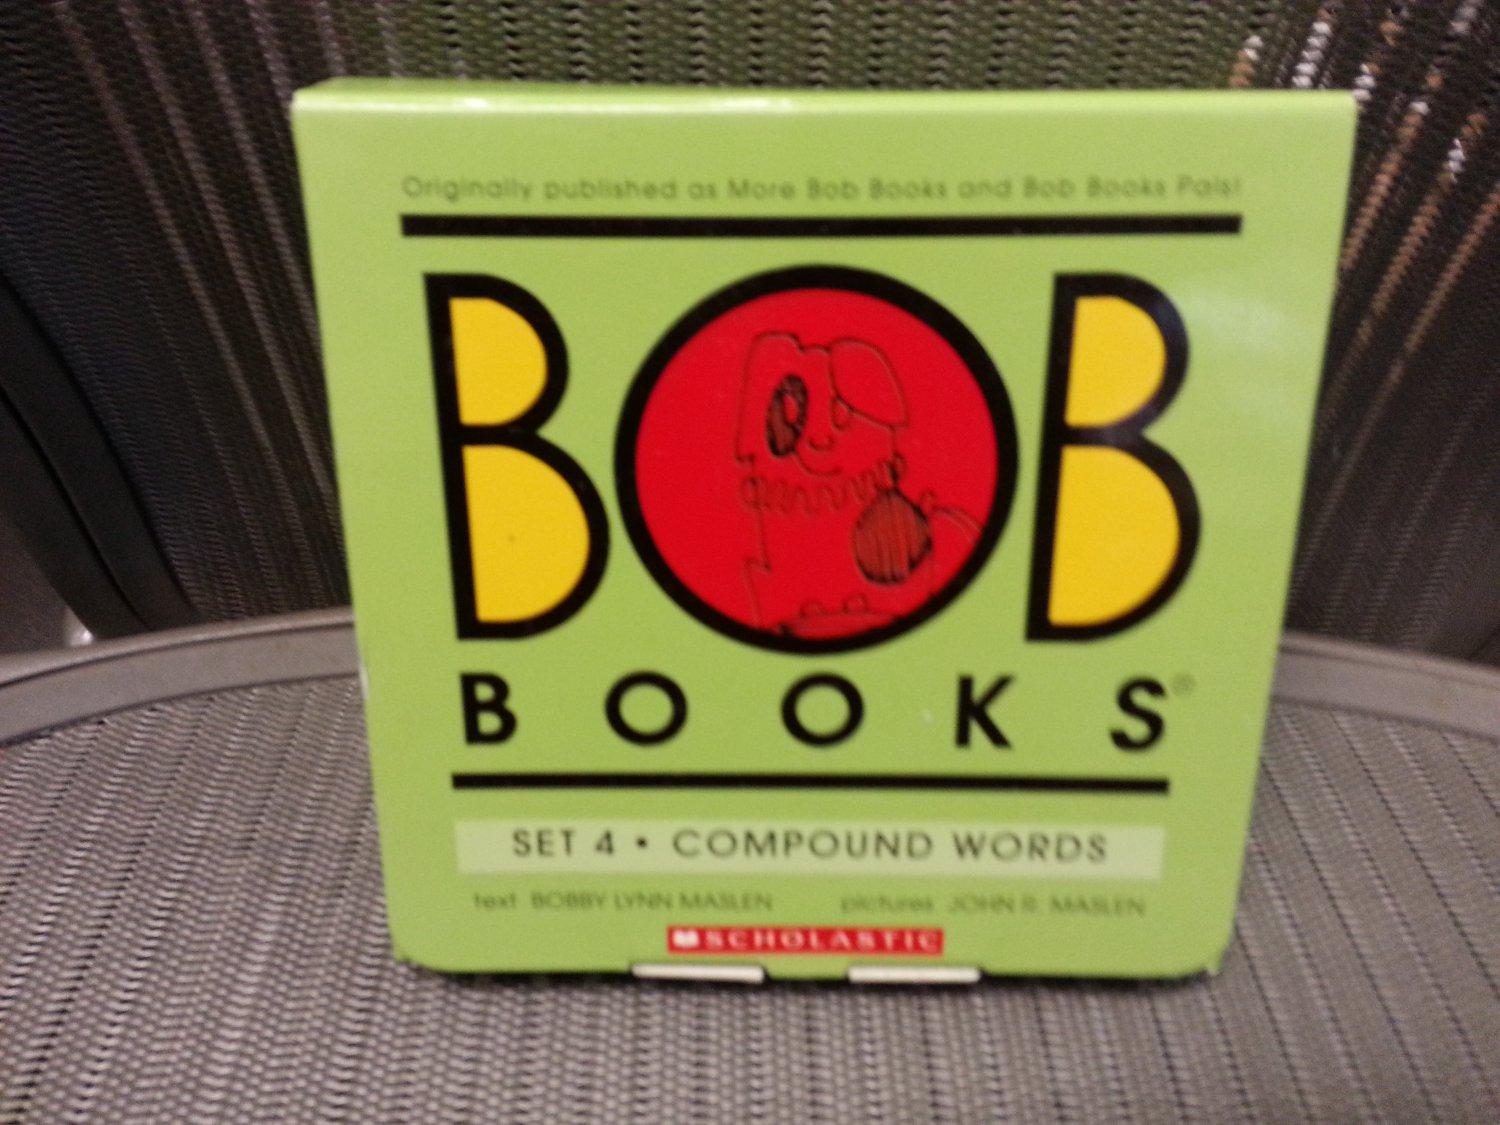 Bob Books Set 4 - Complex Words Paperback � Box set by Bobby Lynn Maslen, John R. Maslen!